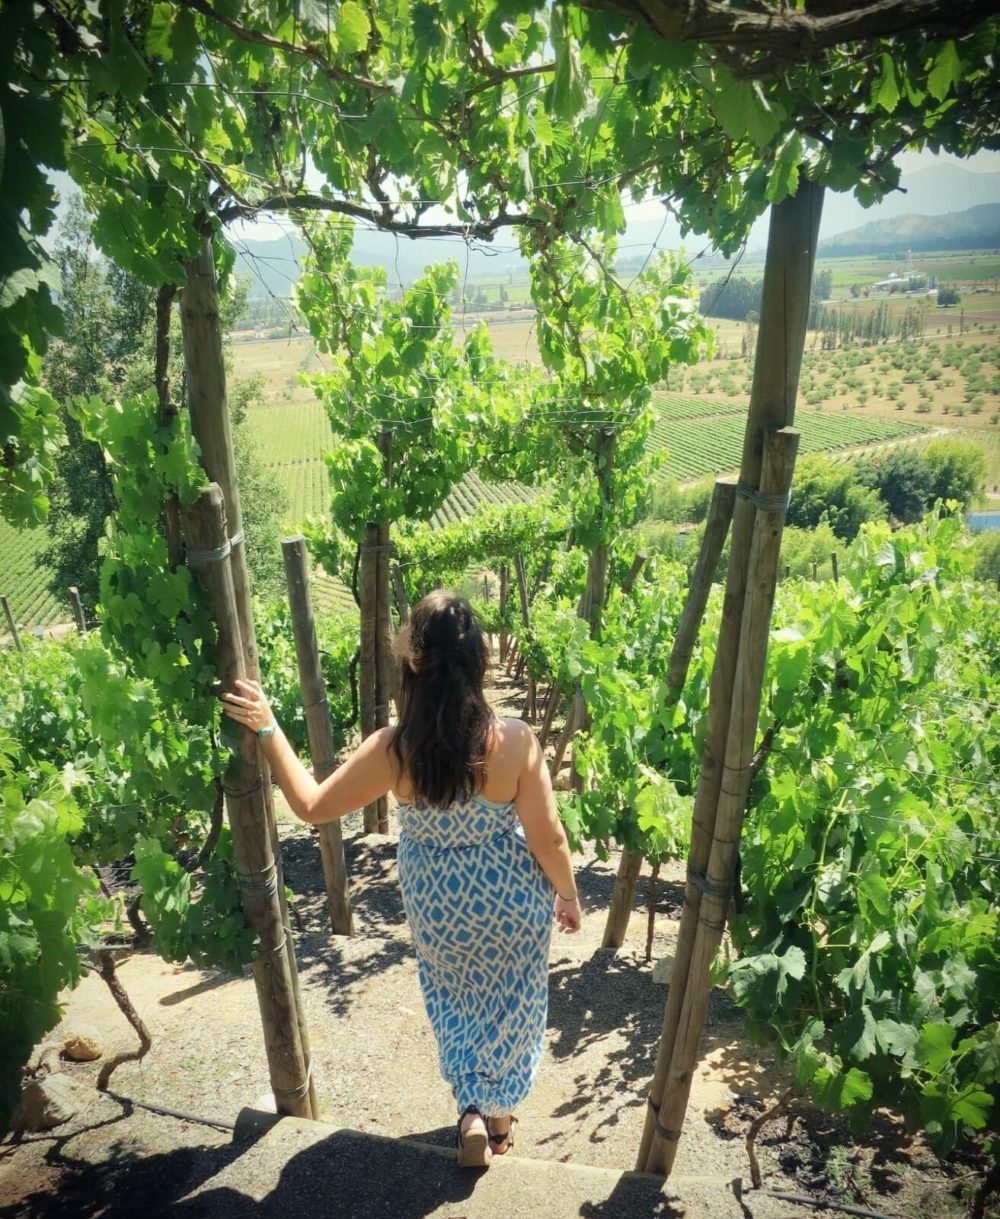 Exploring the vineyards at Indomita during our budget-friendly day of wine tasting in Valparaiso, Chile without a tour!